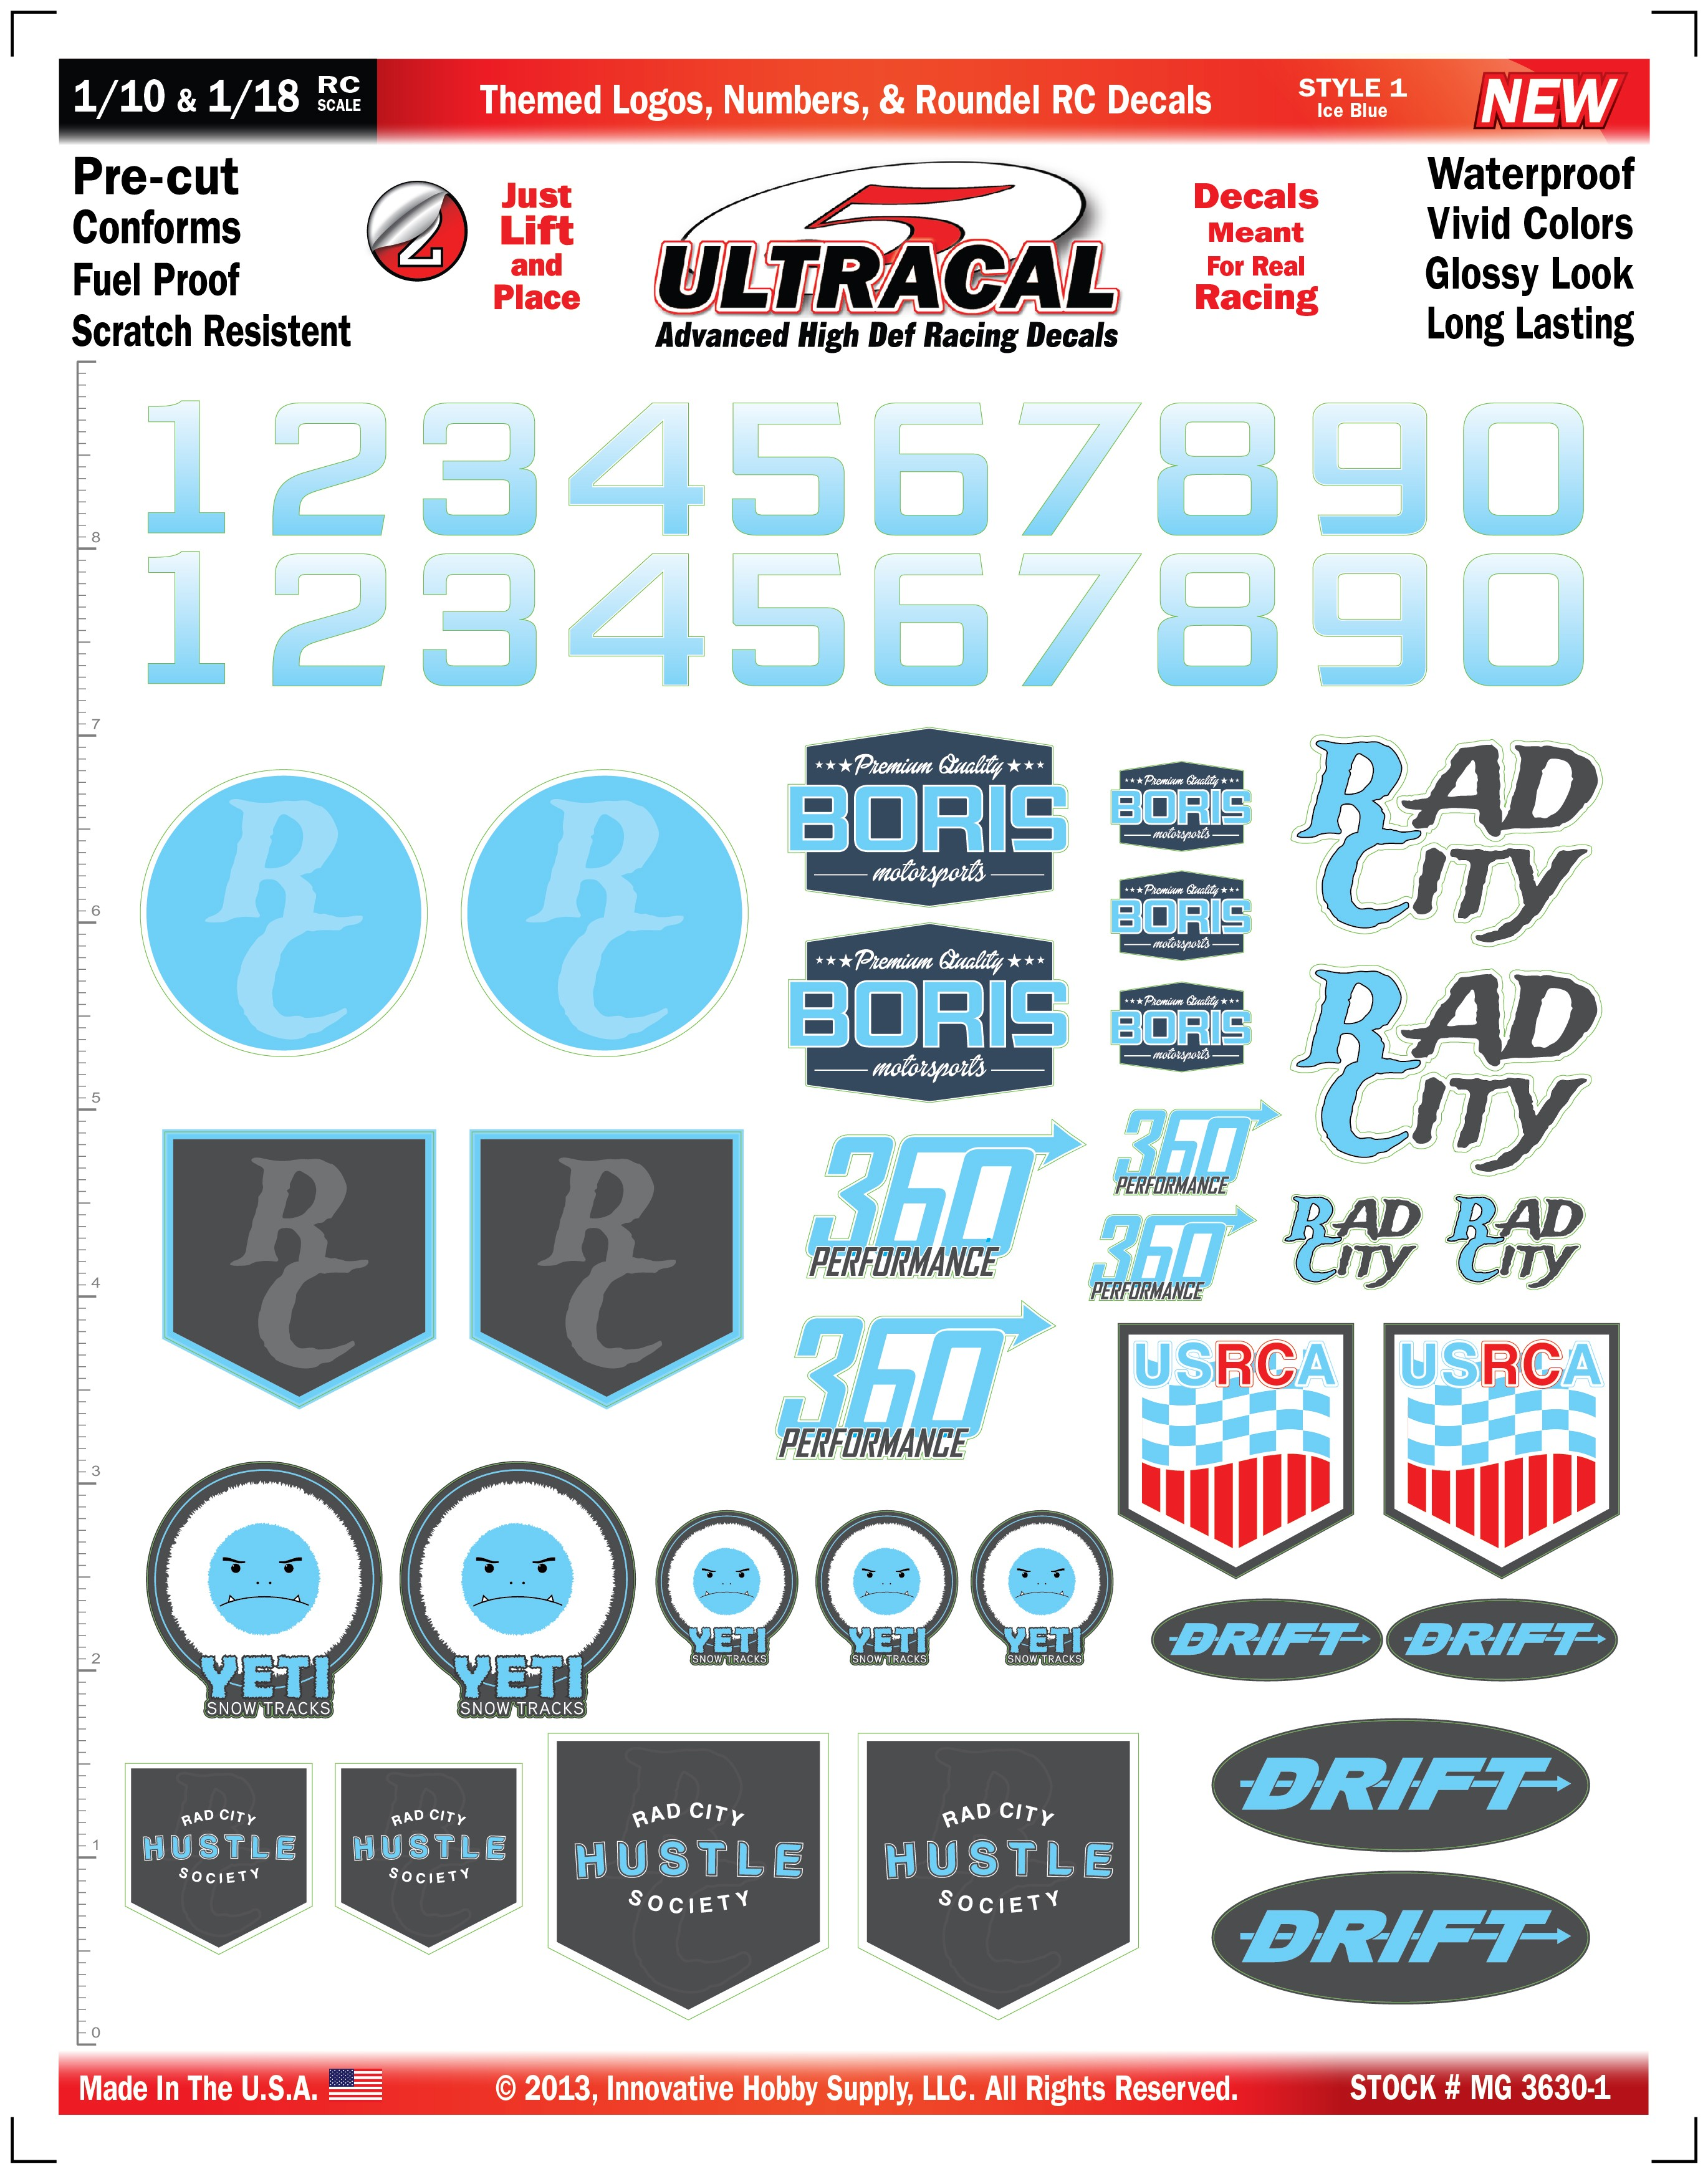 Mg 3630 1 ultracal ice blue themed logos numbers roundel rc decals for 110